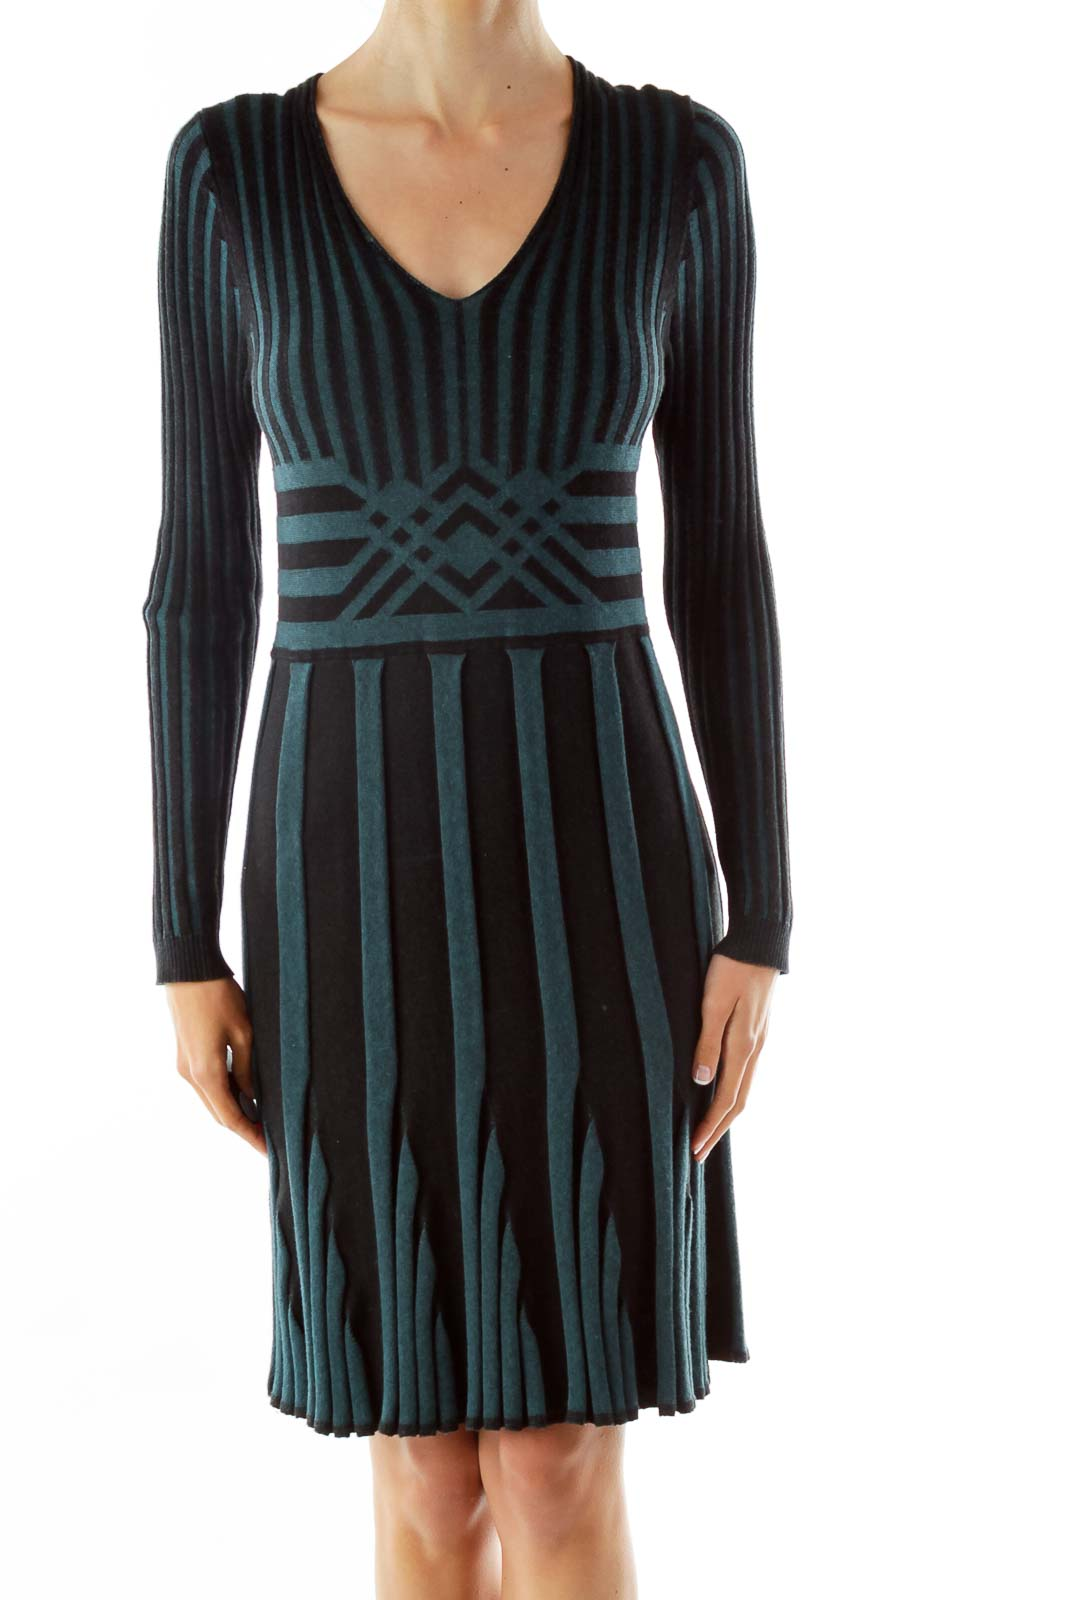 Green Black Textured Striped Day Dress Front